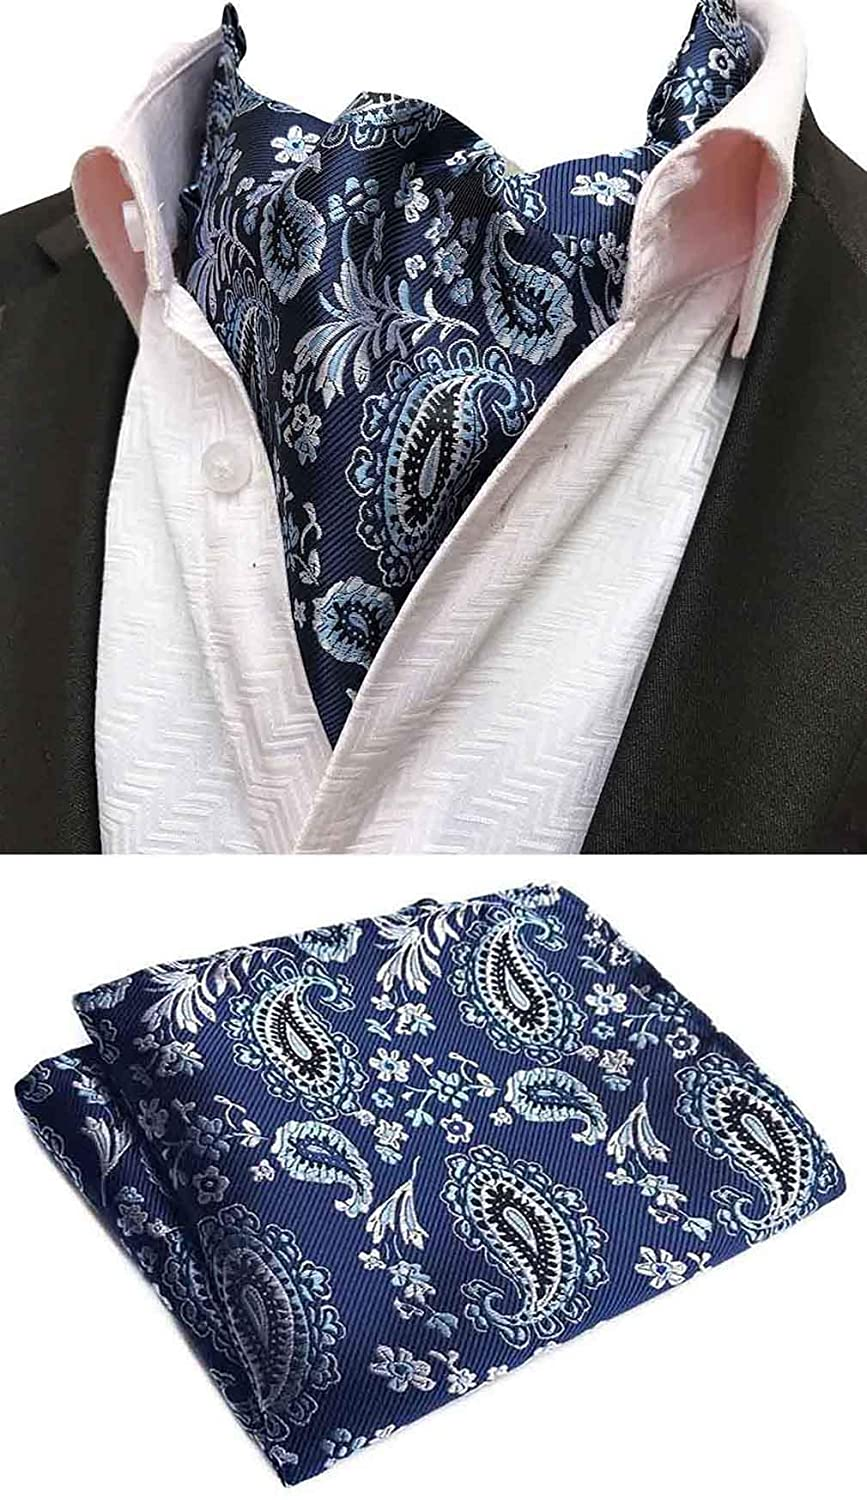 41761578bb61 Clothing, Shoes & Jewelry Ties, Cummerbunds & Pocket Squares MOHSLEE Mens  Luxury Paisley 3 Pack Cravat Silk Ascot Scarf Tie Pocket Square Set SJ017